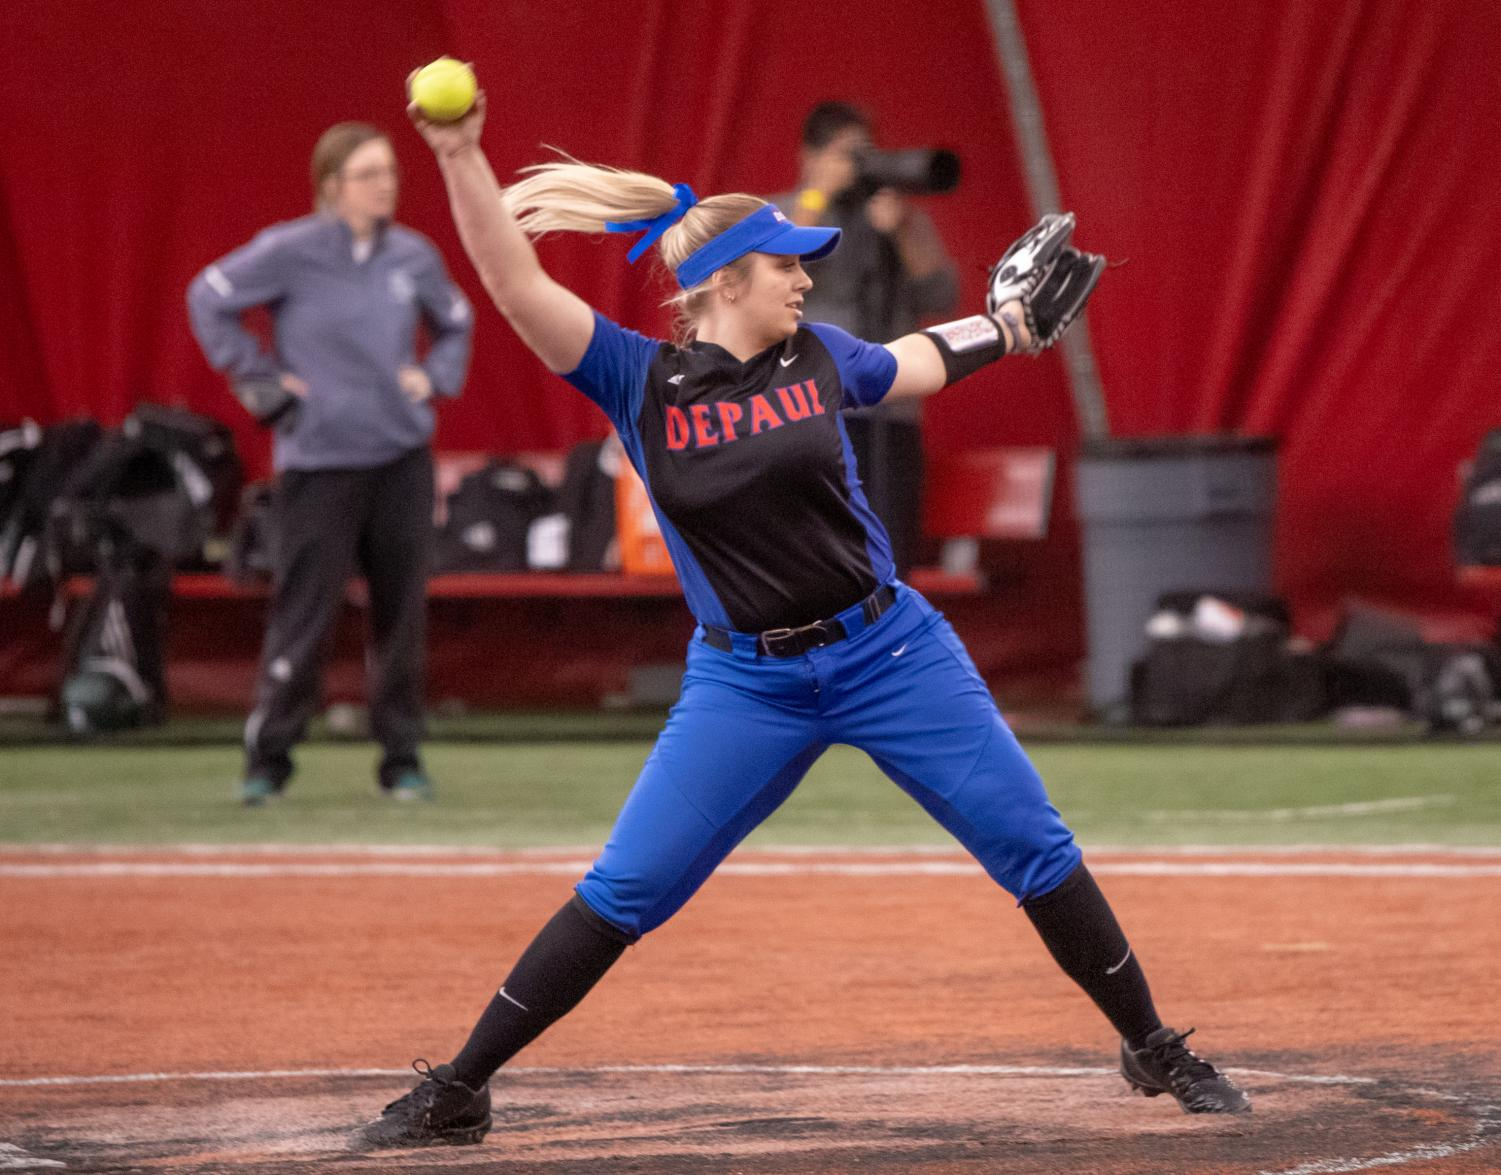 Sophomore pitcher Natalie Halvorson winds up for a pitch during DePaul's Feb. 9 game against Green Bay at the Total Control Sports Invitational. Halvorson leads the team both in wins and in ERA so far this season, with a record of 13-5 and an ERA of 3.41. (Jonathan Aguilar | The DePaulia)